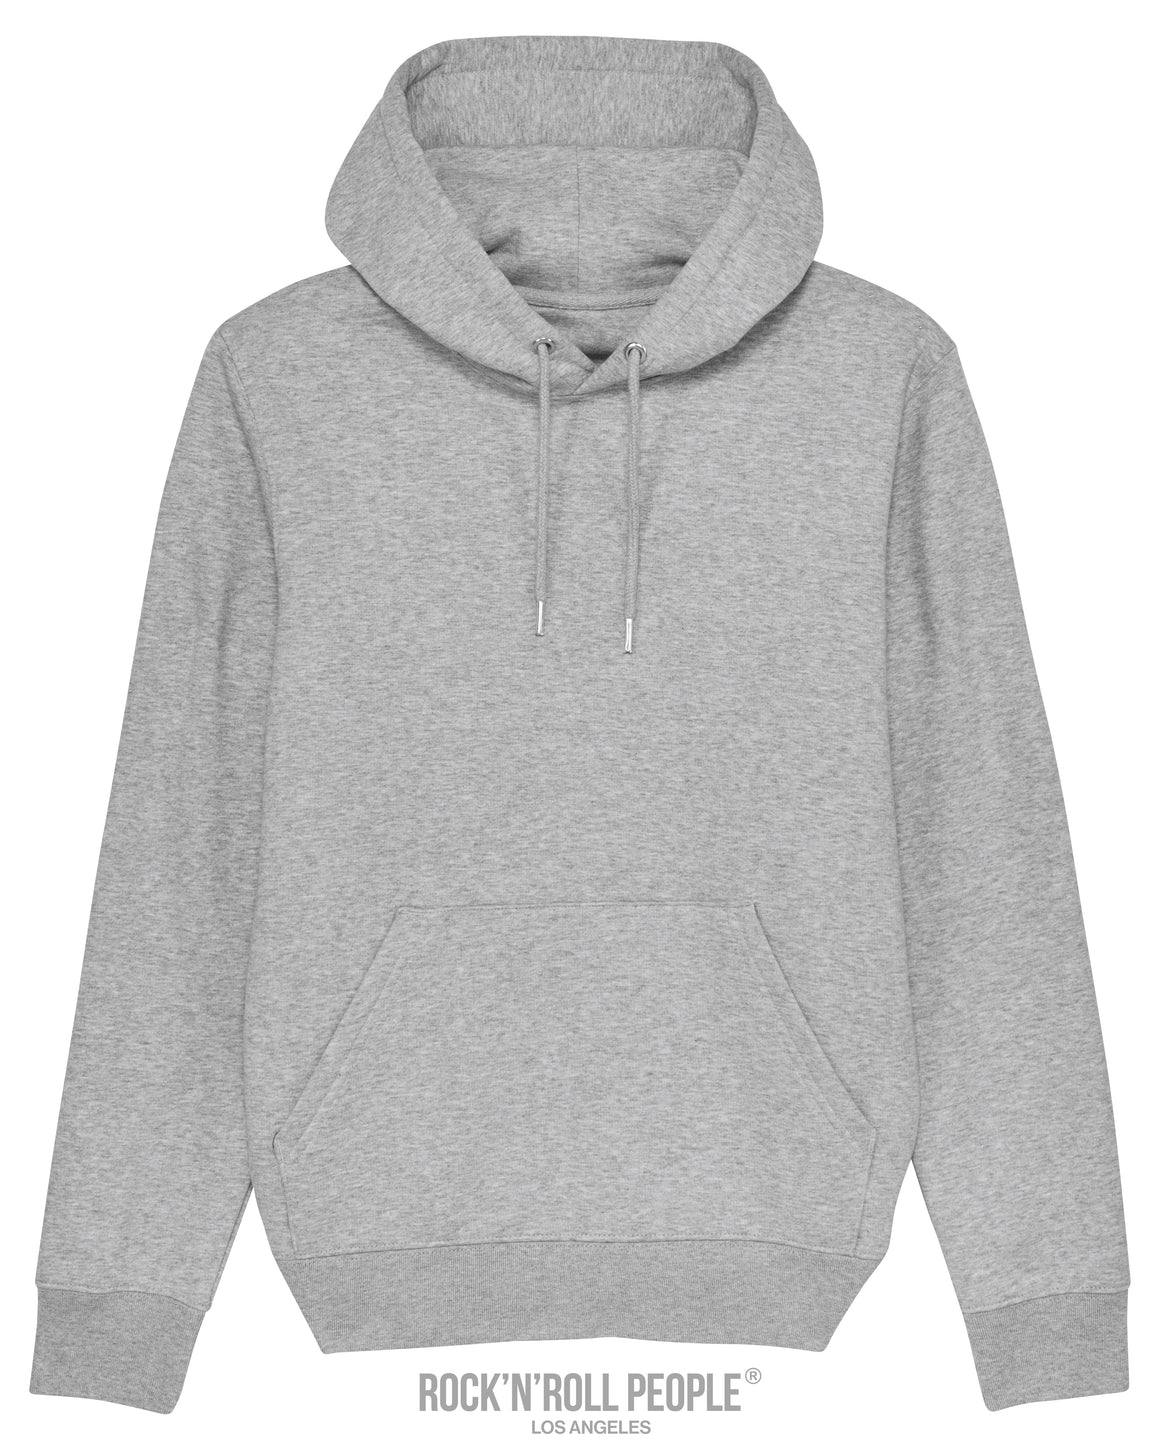 UNISEX PLAIN HOODIE - HEATHER GRAY